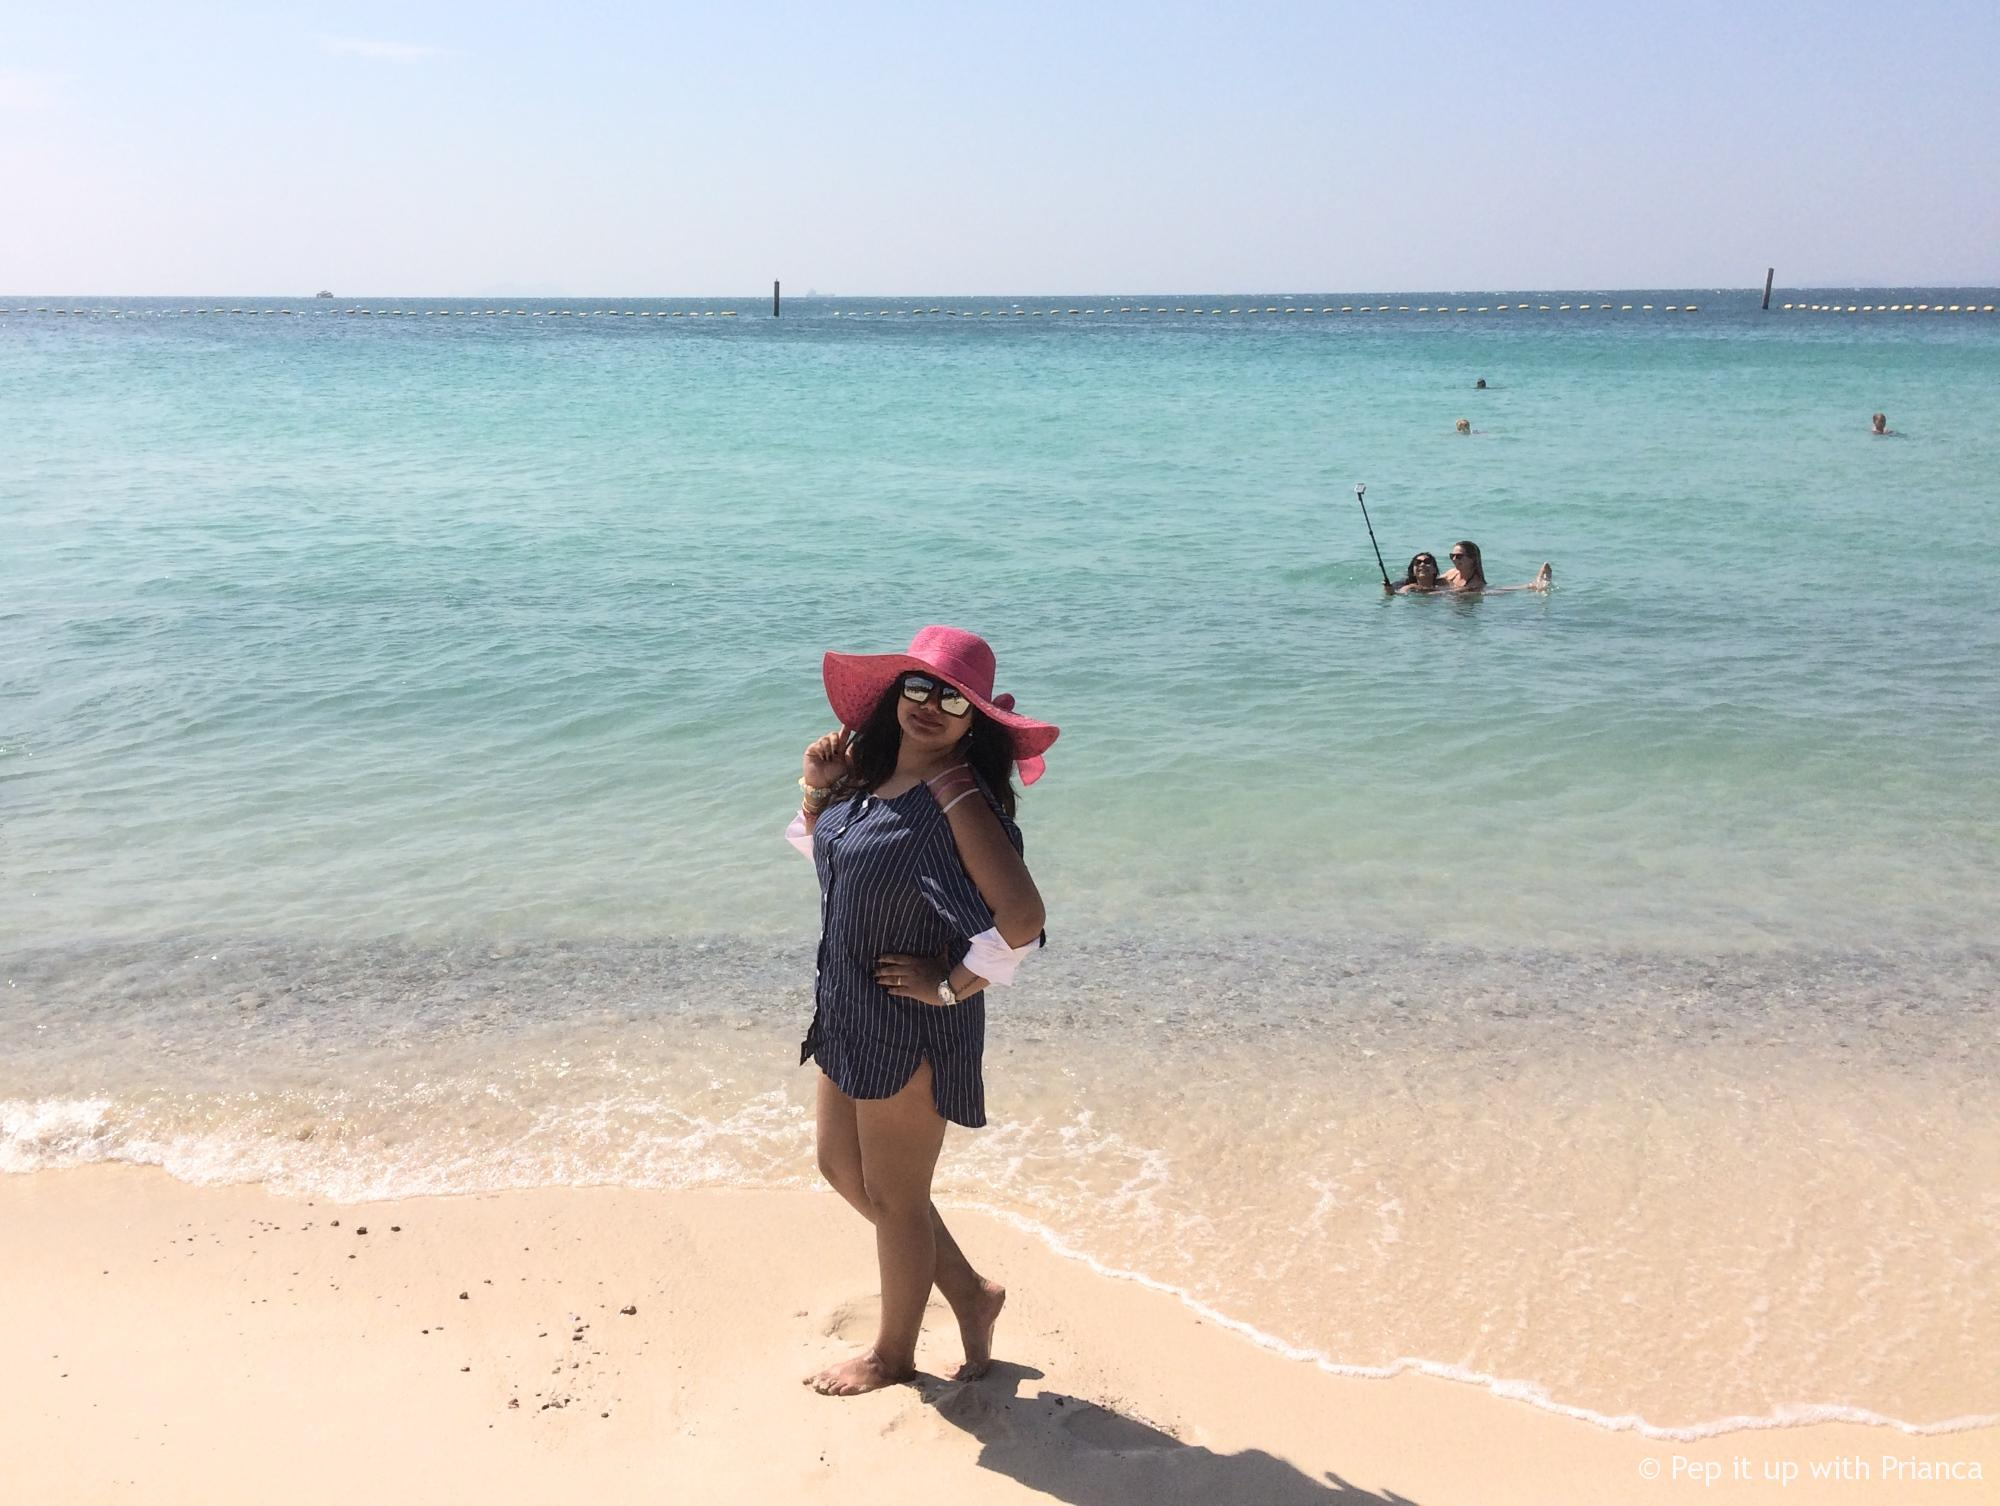 IMG 4462 - My Experience of a Day Tour to Koh Larn - Coral Island Near Pattaya